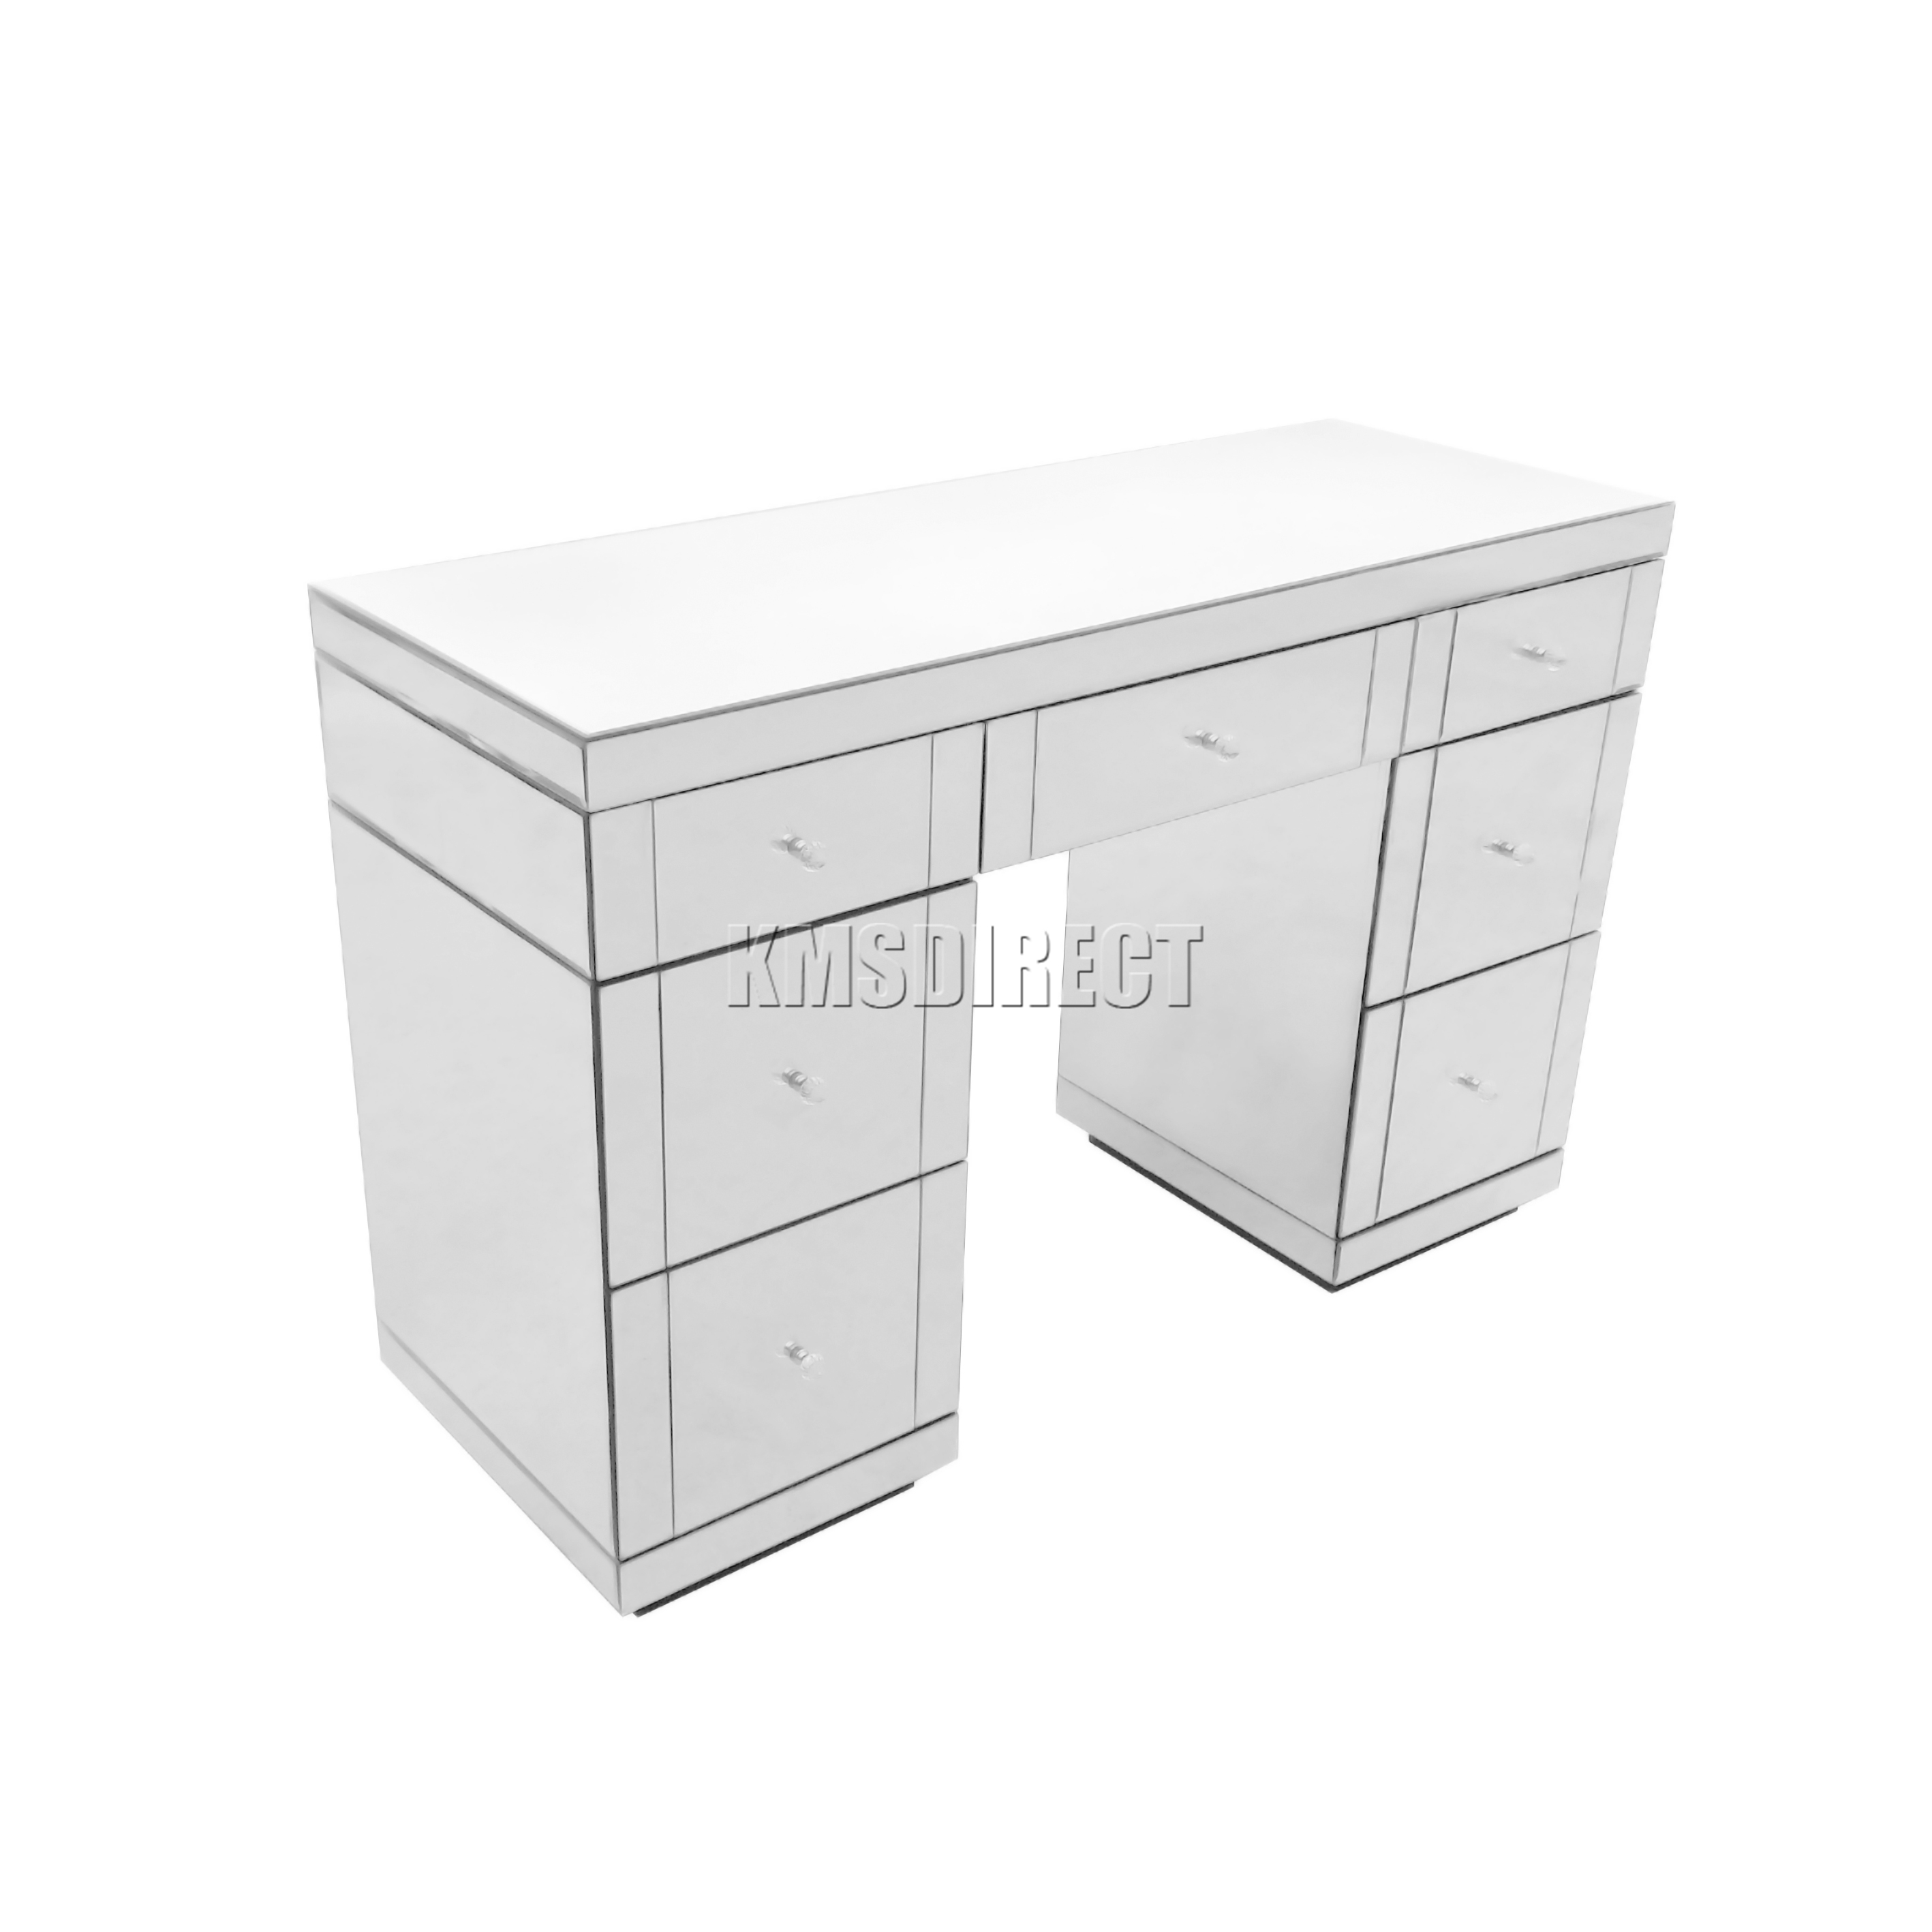 five more signature series drawers with table views sage manual umf ultima exam drawer